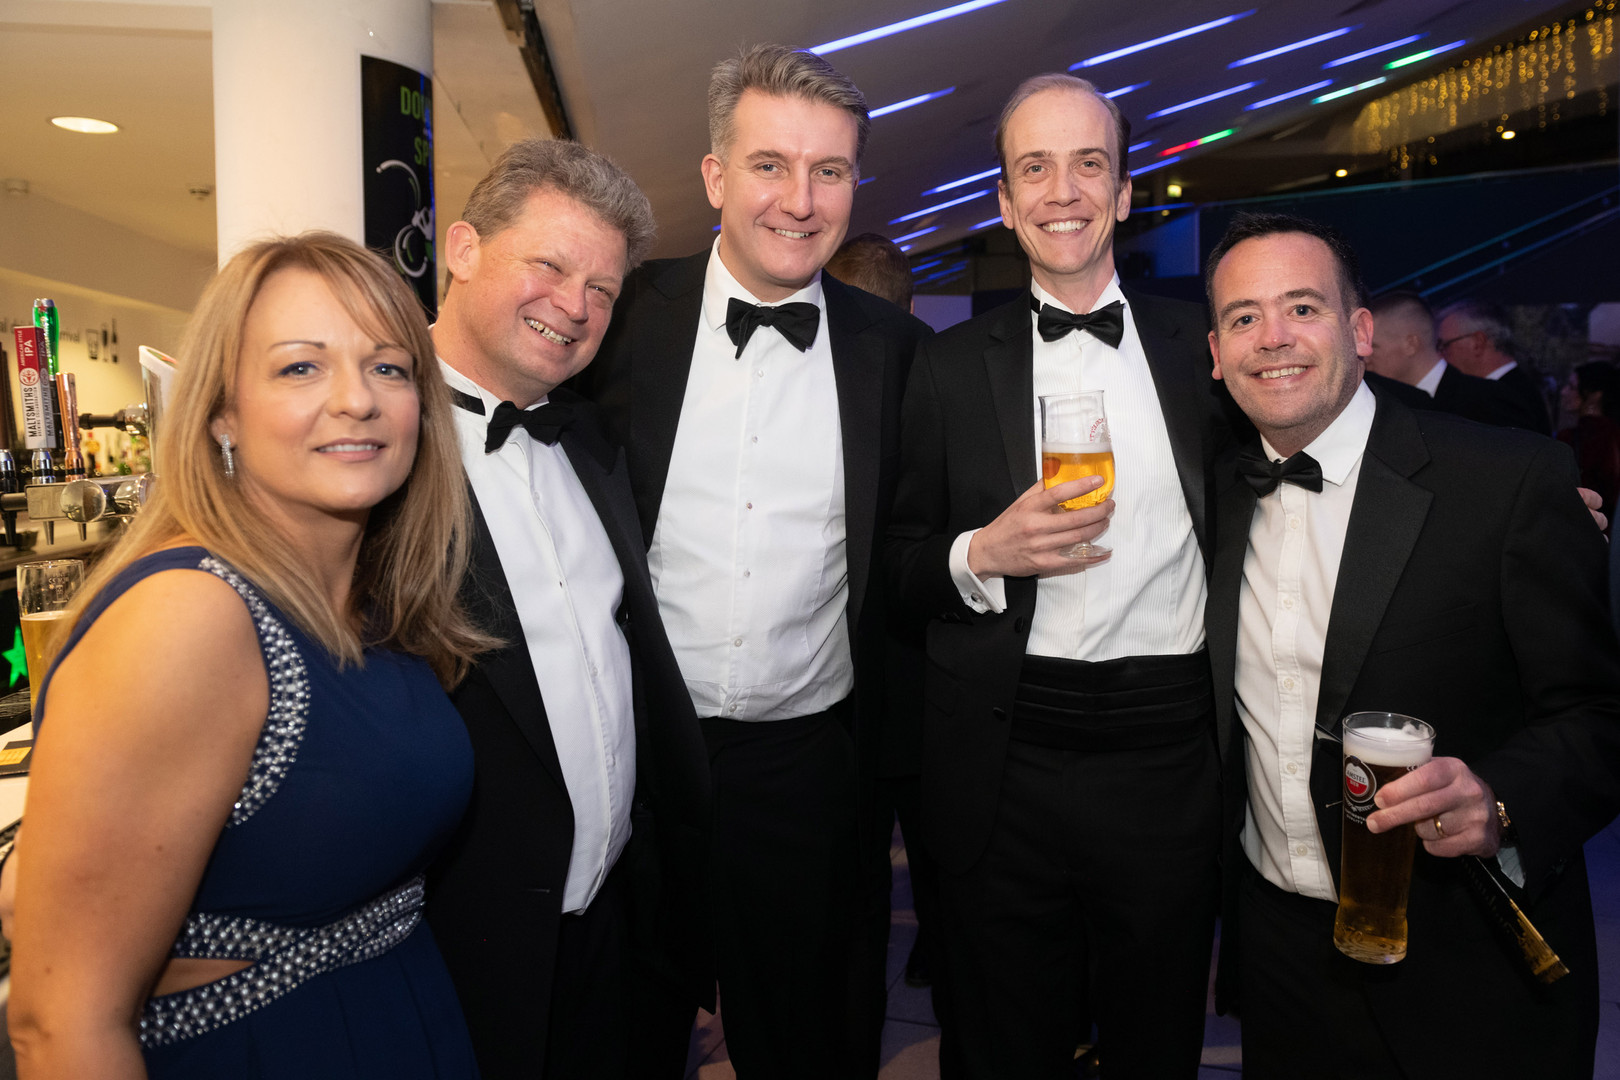 SurreyPropertyAwards_Nov2019_176.jpg